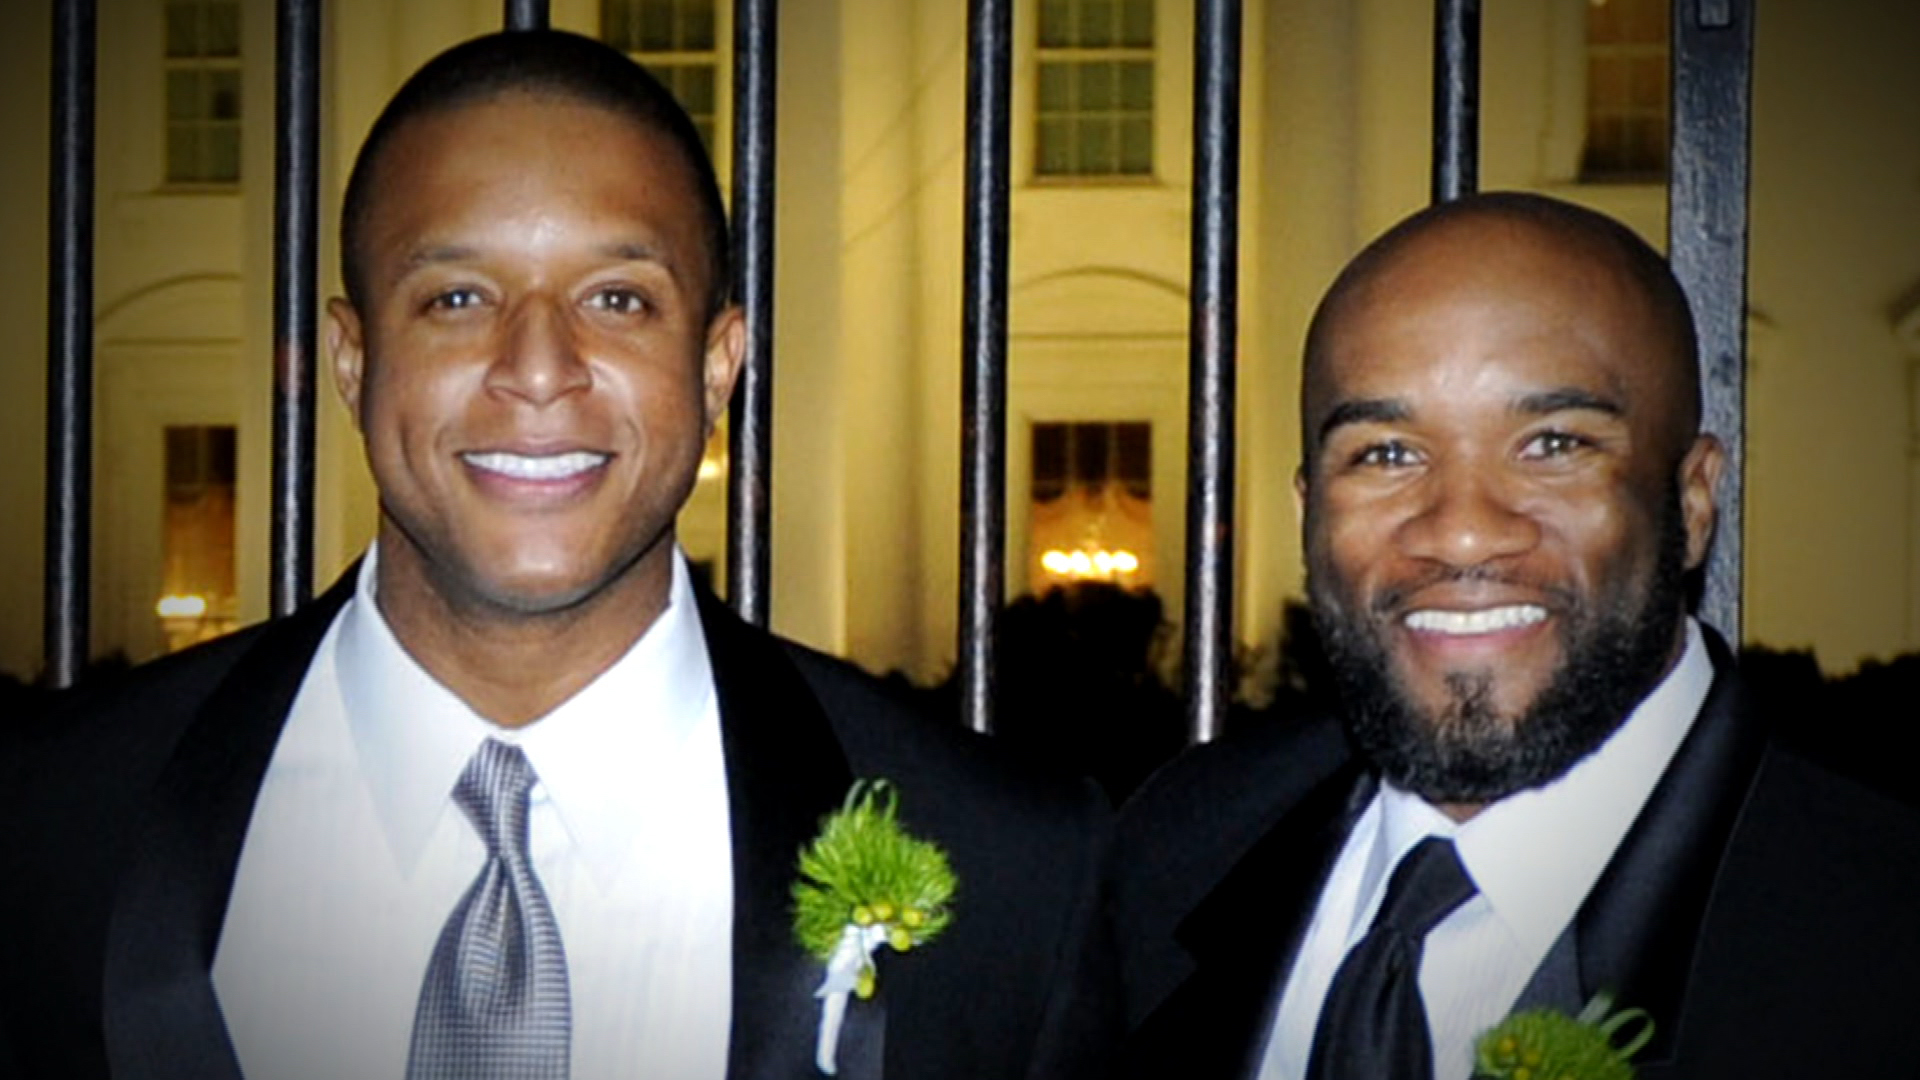 Today S Craig Melvin Reveals His Brother Has Colon Cancer